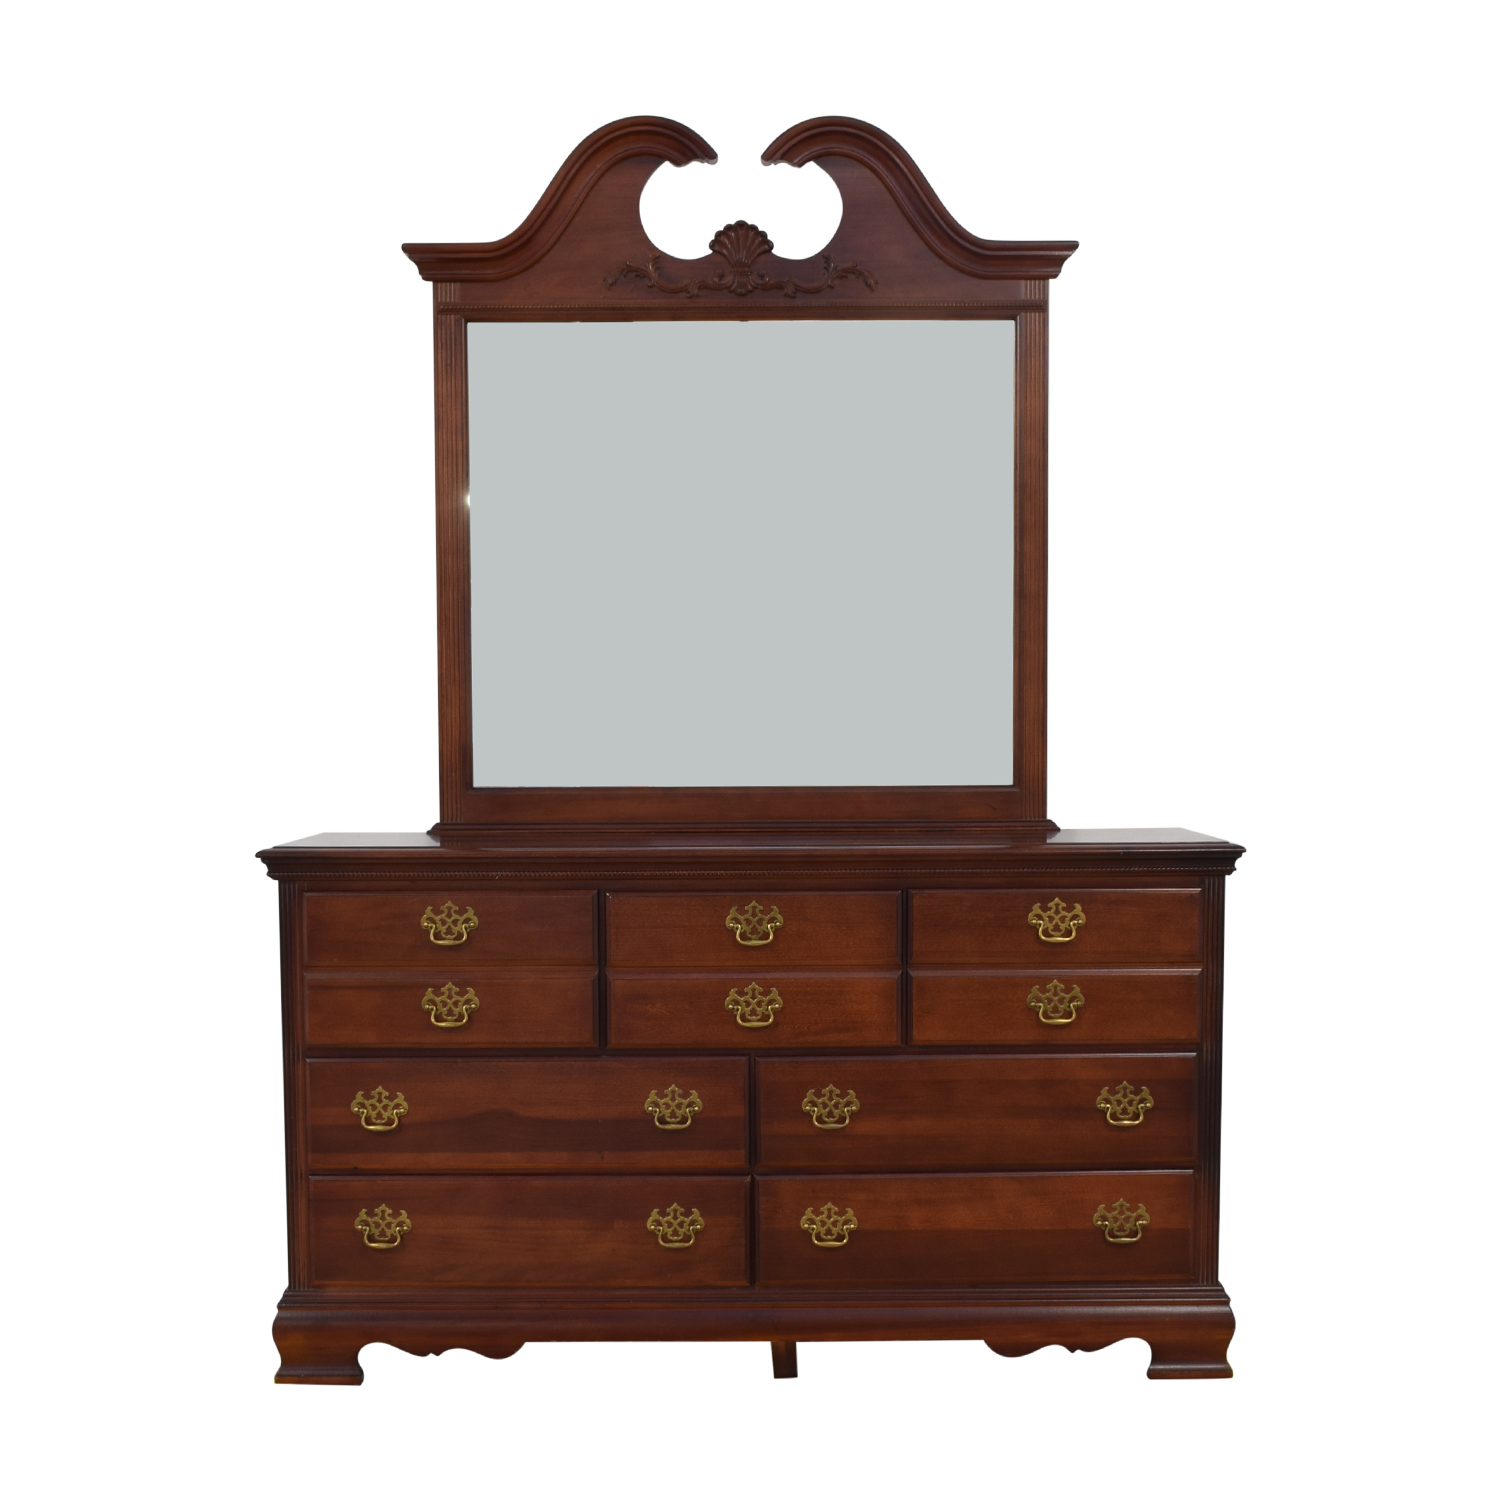 American Drew American Drew Dresser with Mirror coupon